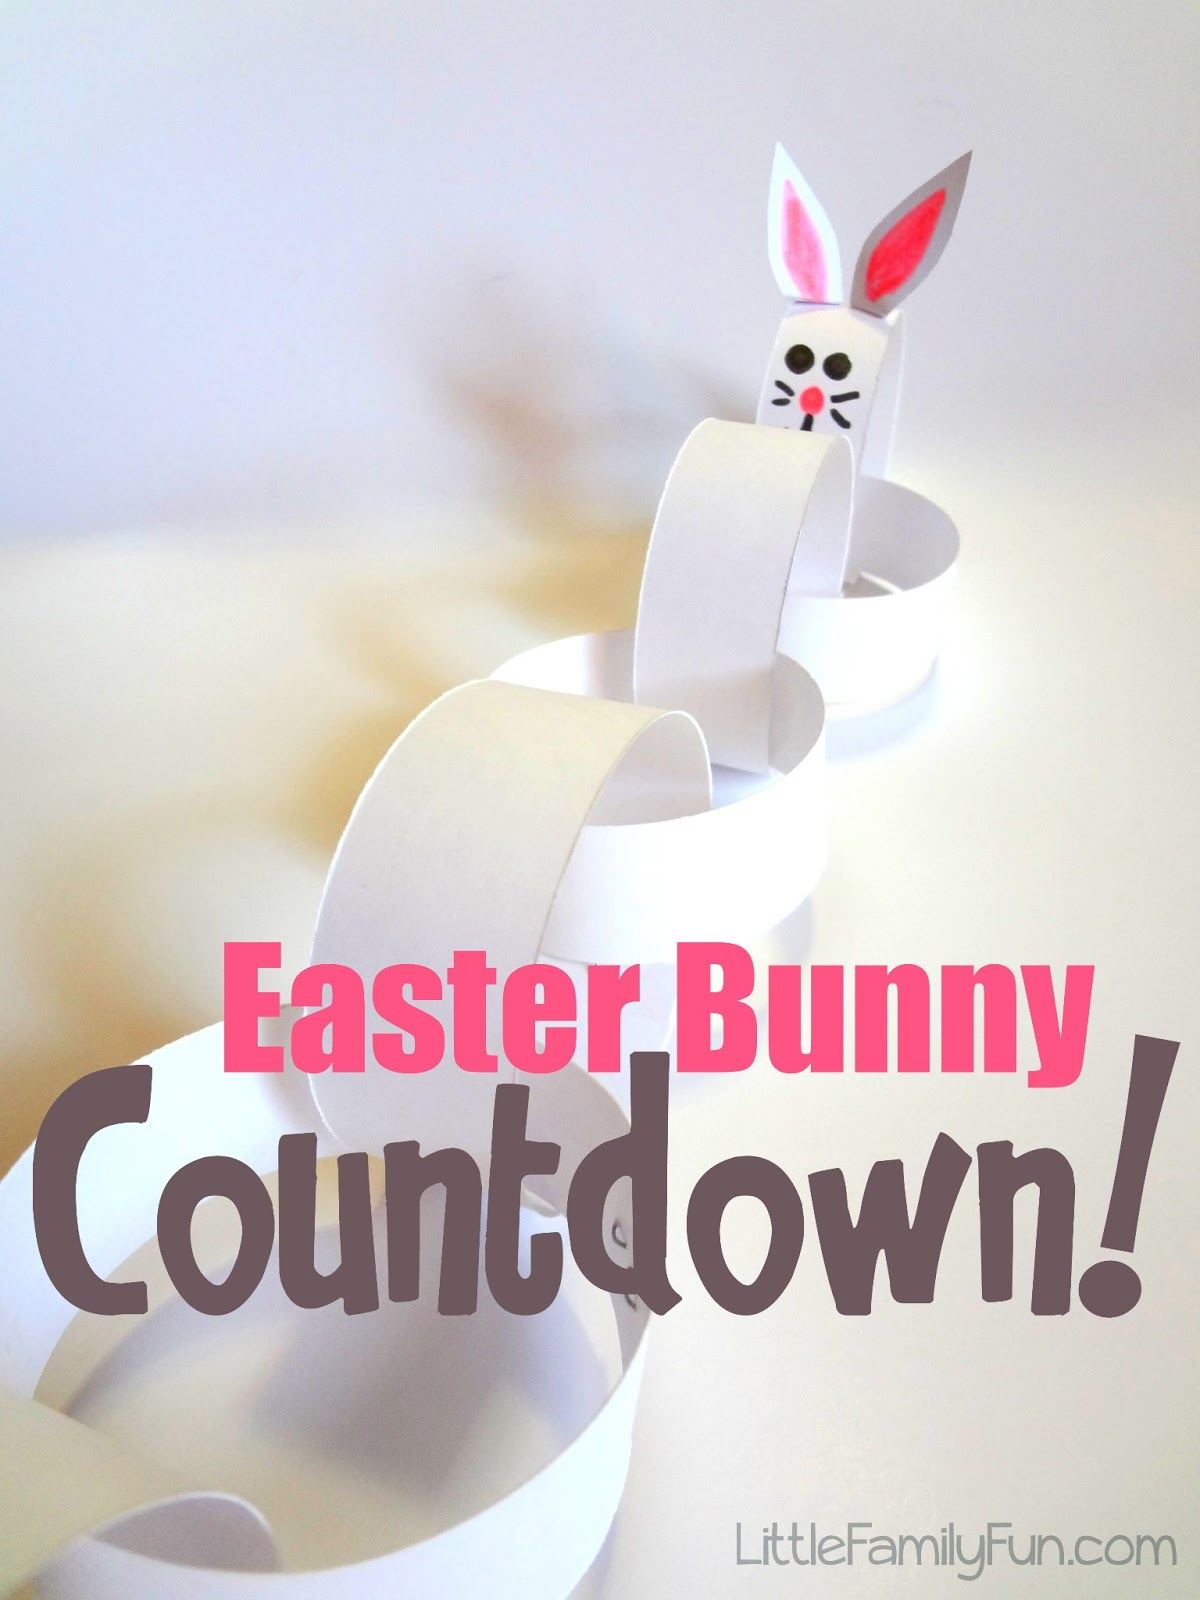 Little Family Fun Easter Bunny Countdown How Many Days Till Easter LC2gcGDF